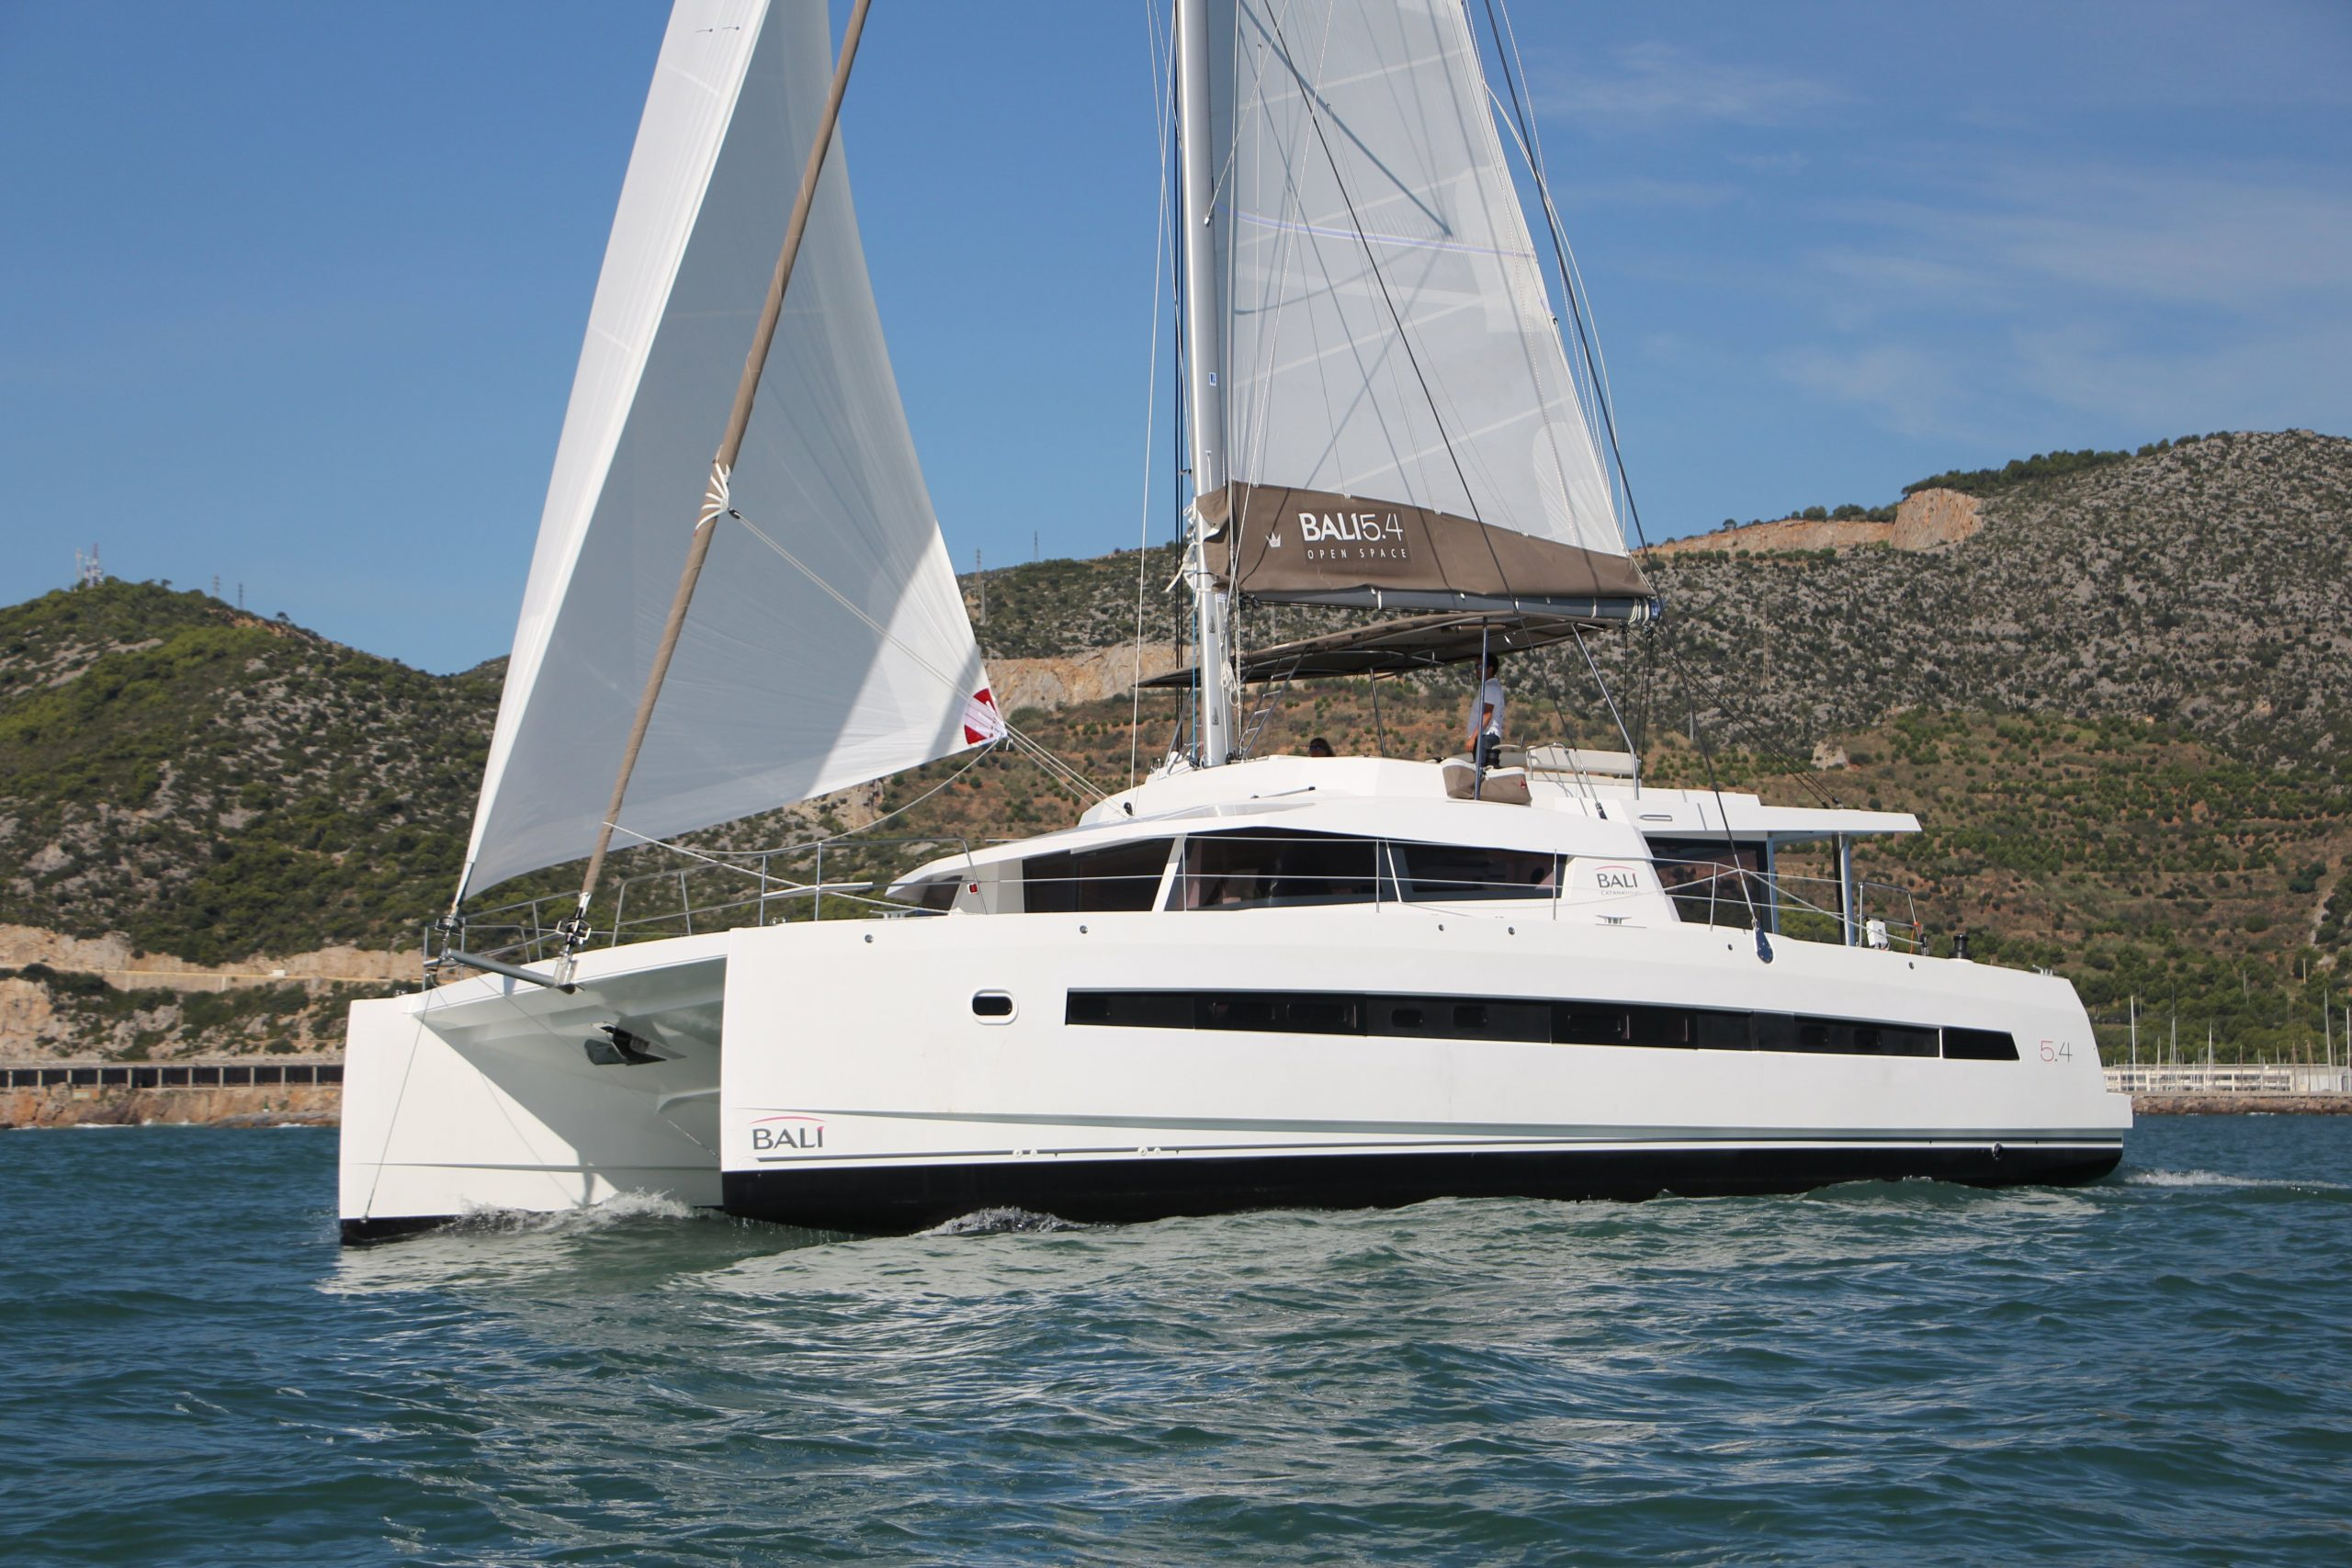 Bali 5.4 New Addition to the Dream Yacht Charter Fleet